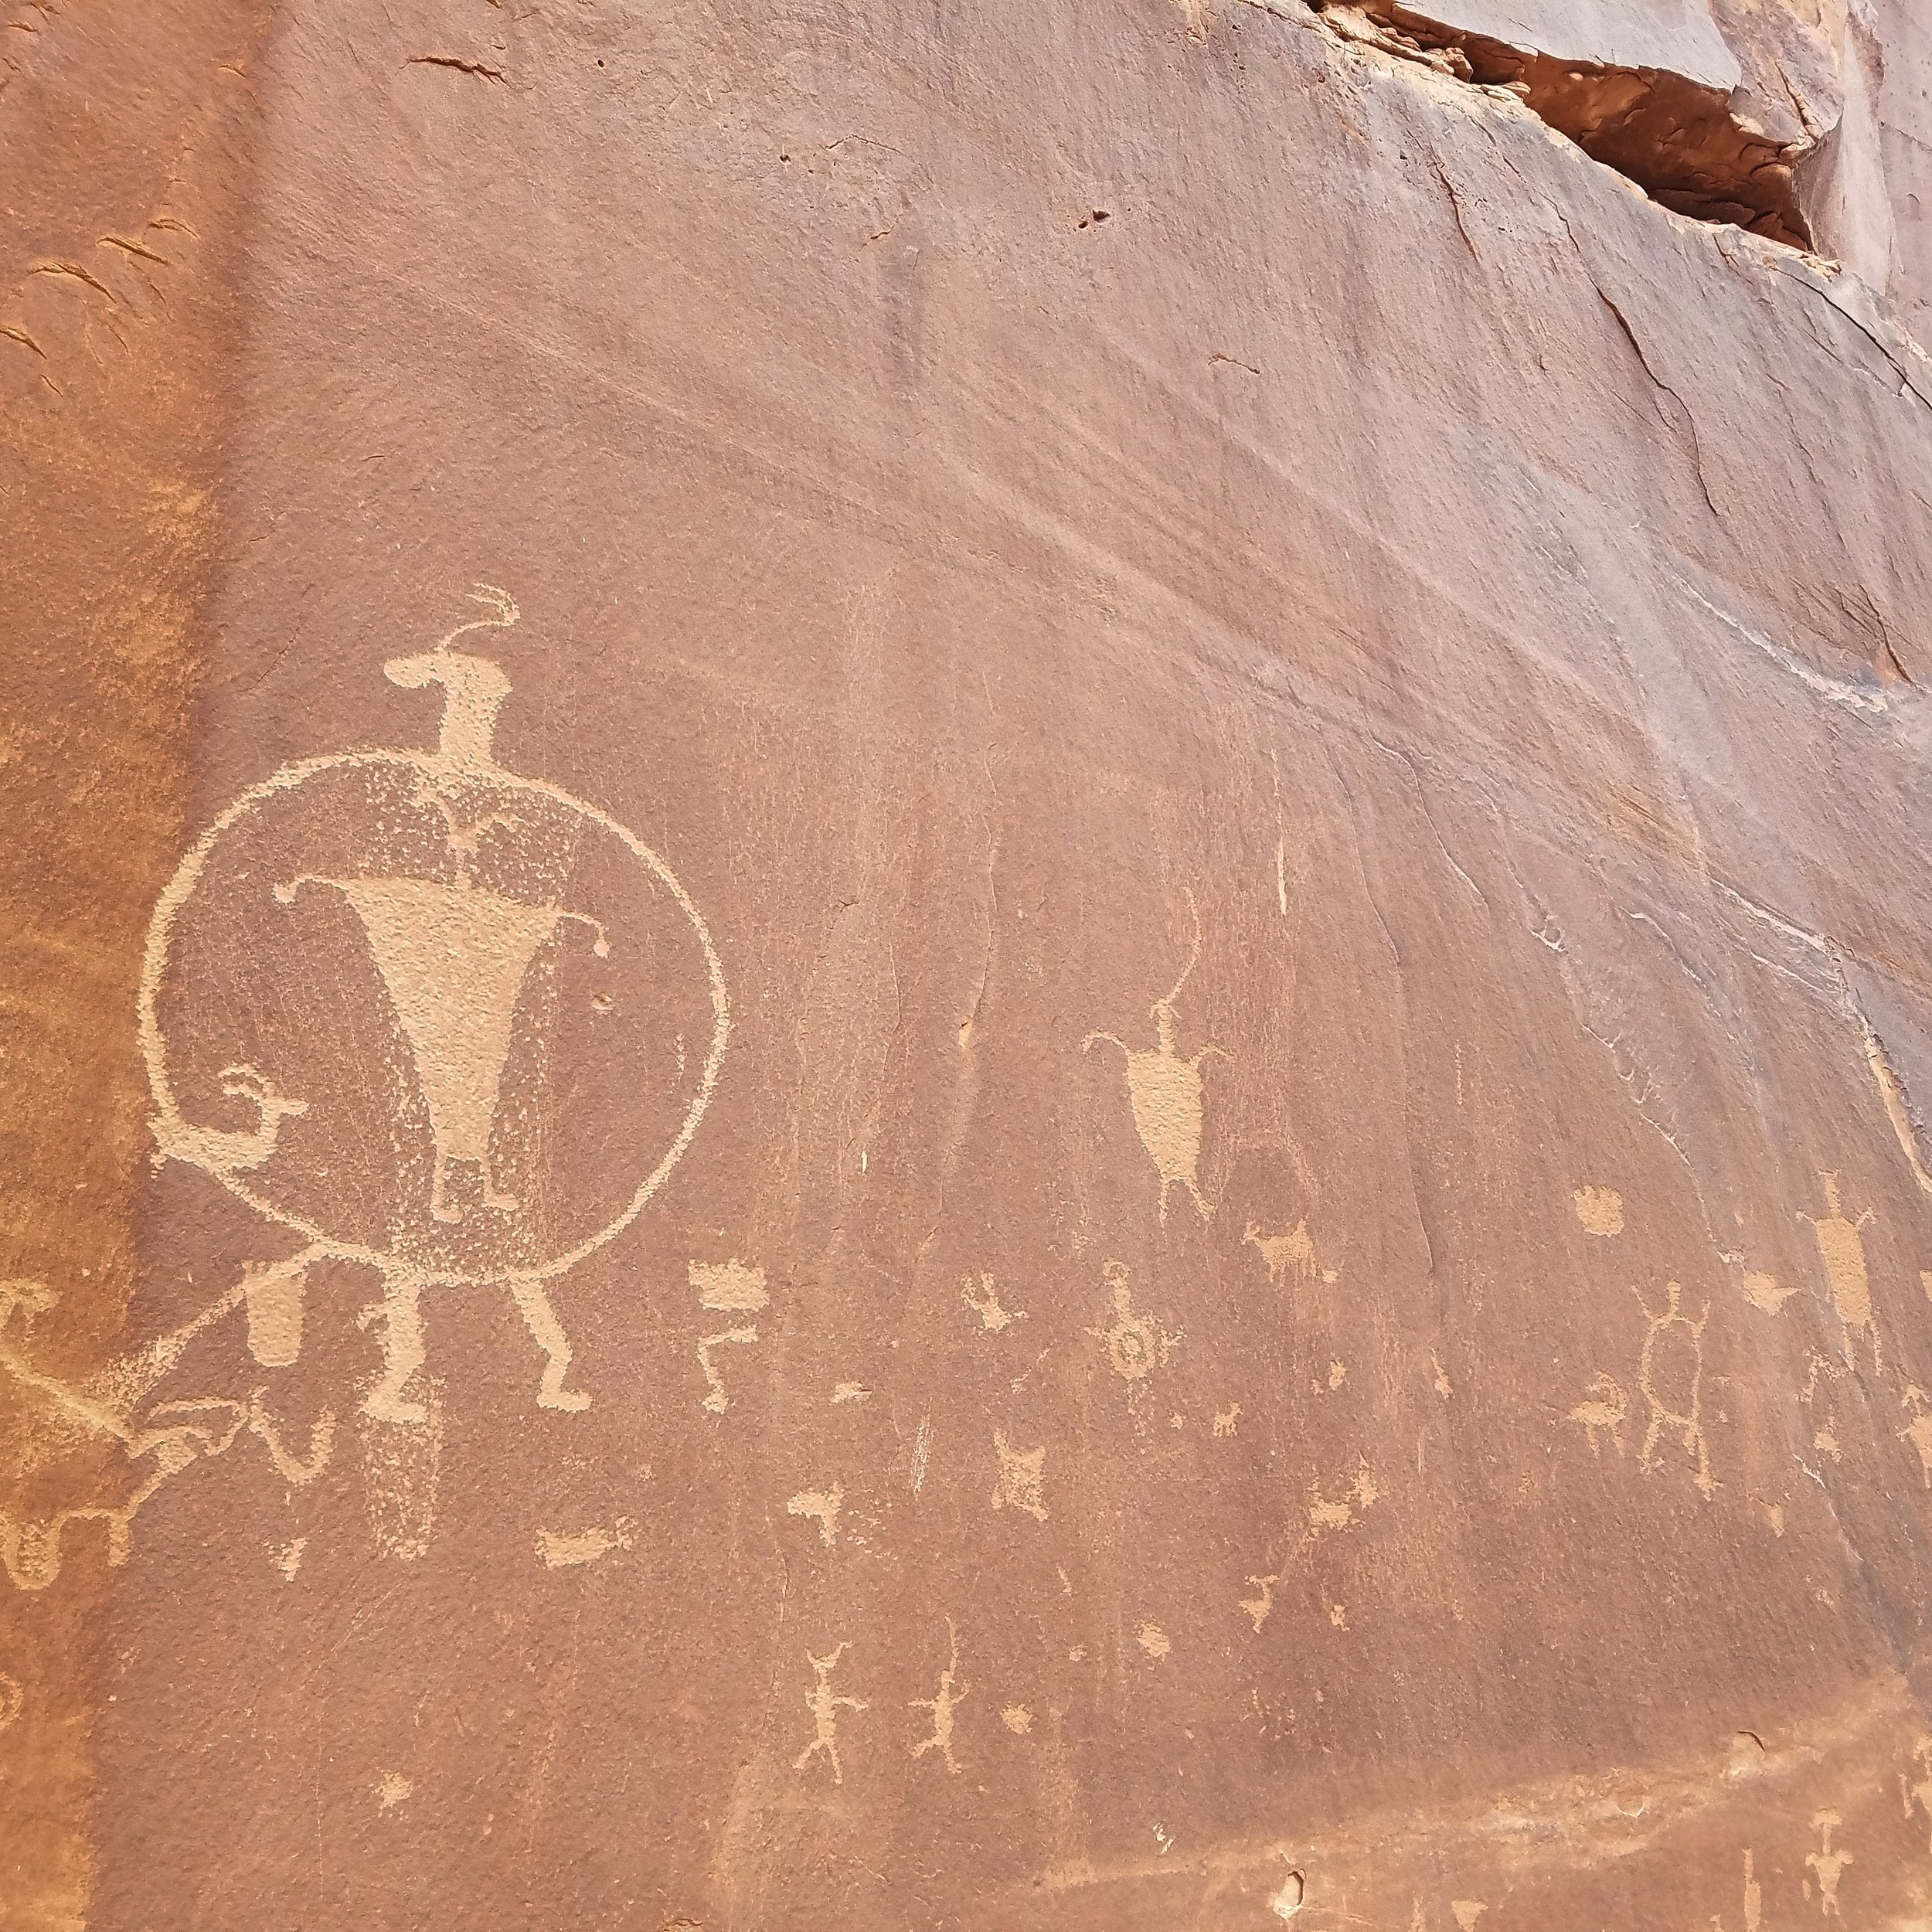 Petroglyphs in the behind the rocks wilderness study area. Moab-UT